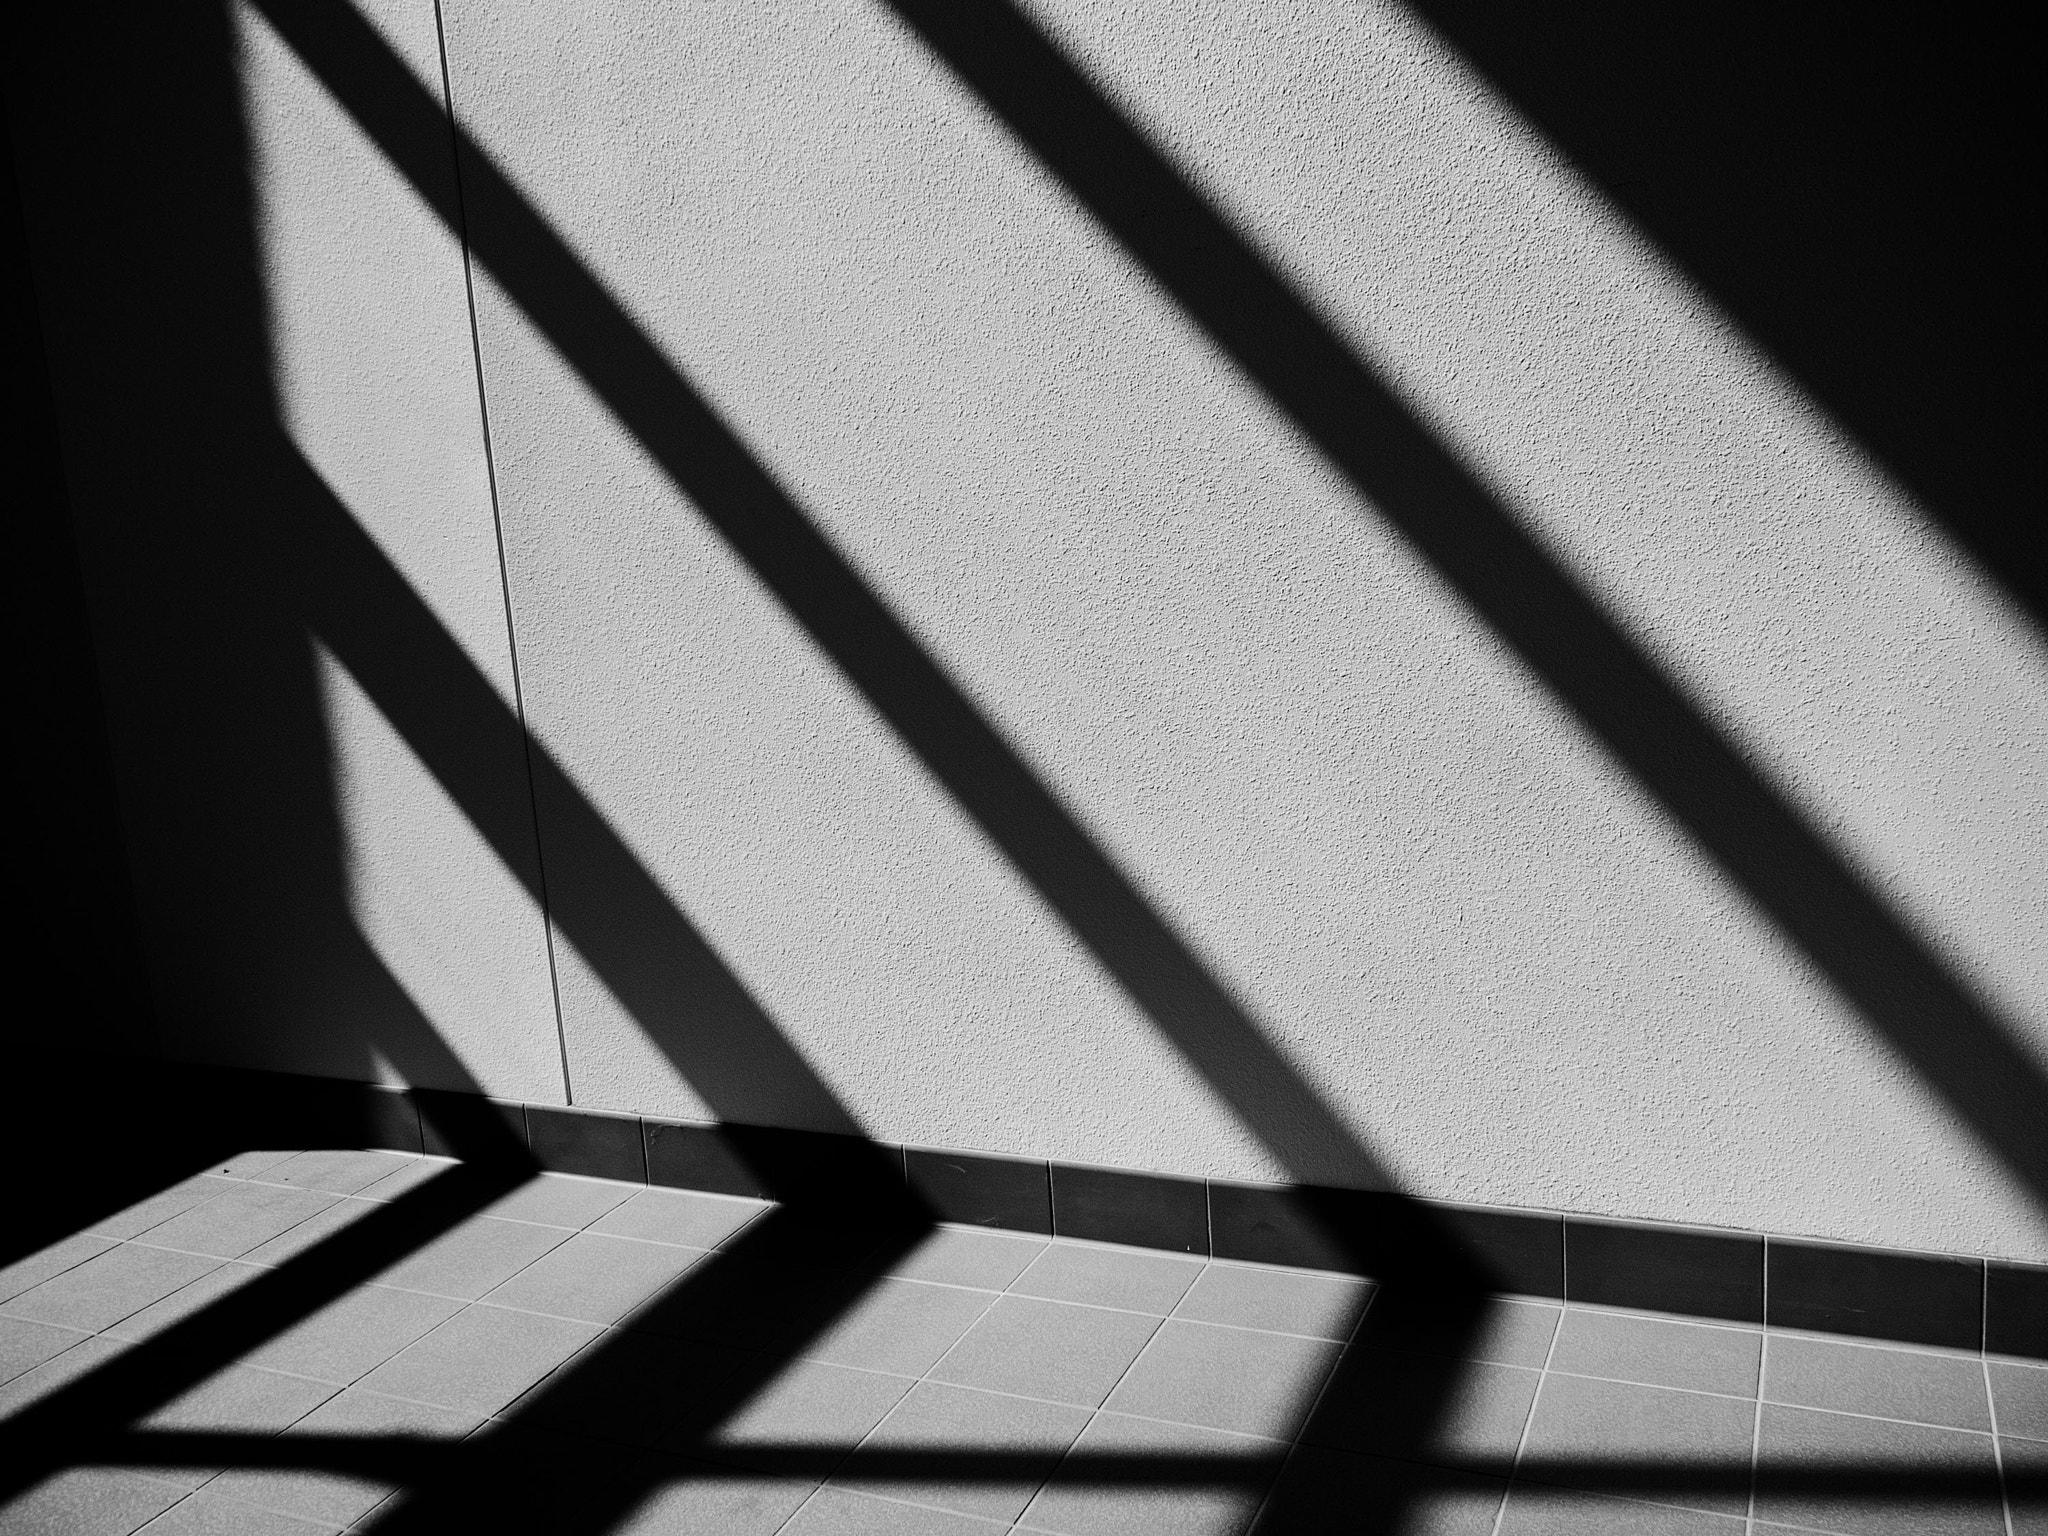 Photograph Light and Shadow by Milena Robinson on 500px